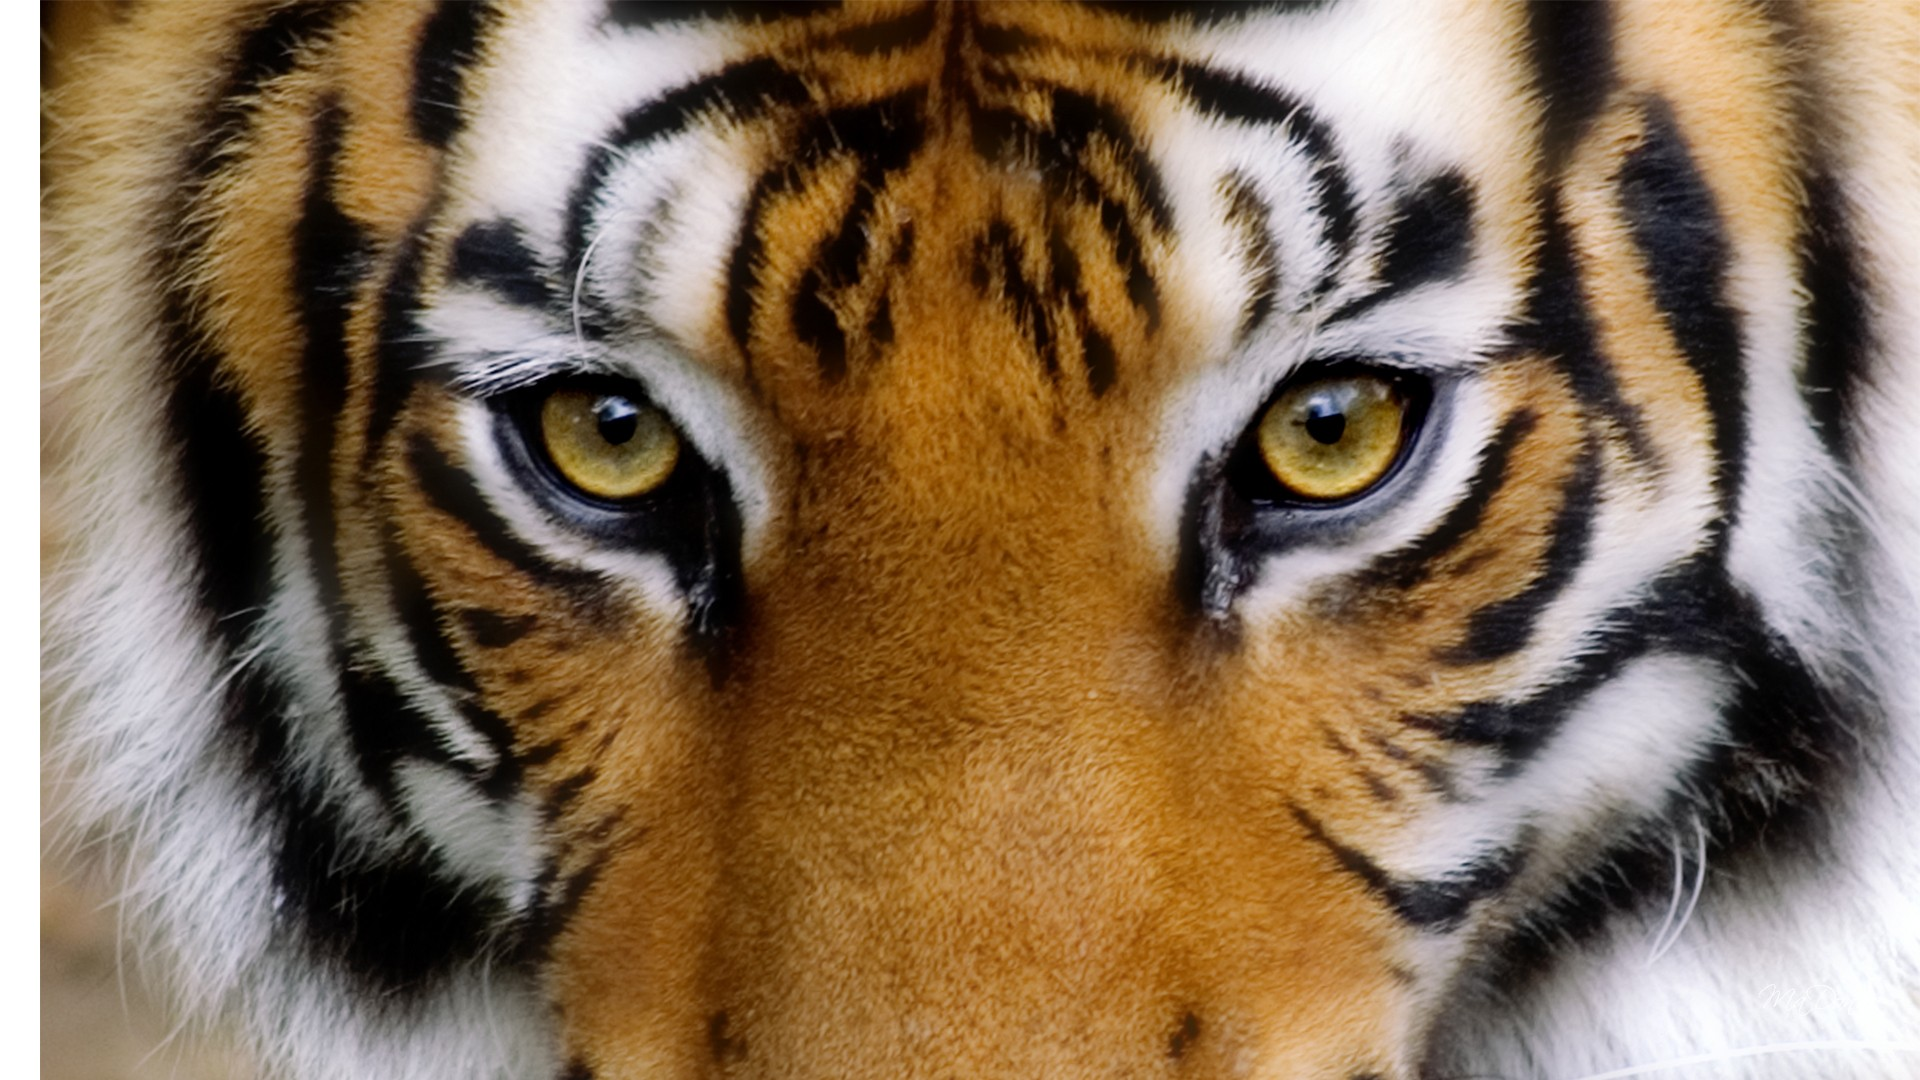 Tiger eyes wallpaper | 1920x1080 | #14441